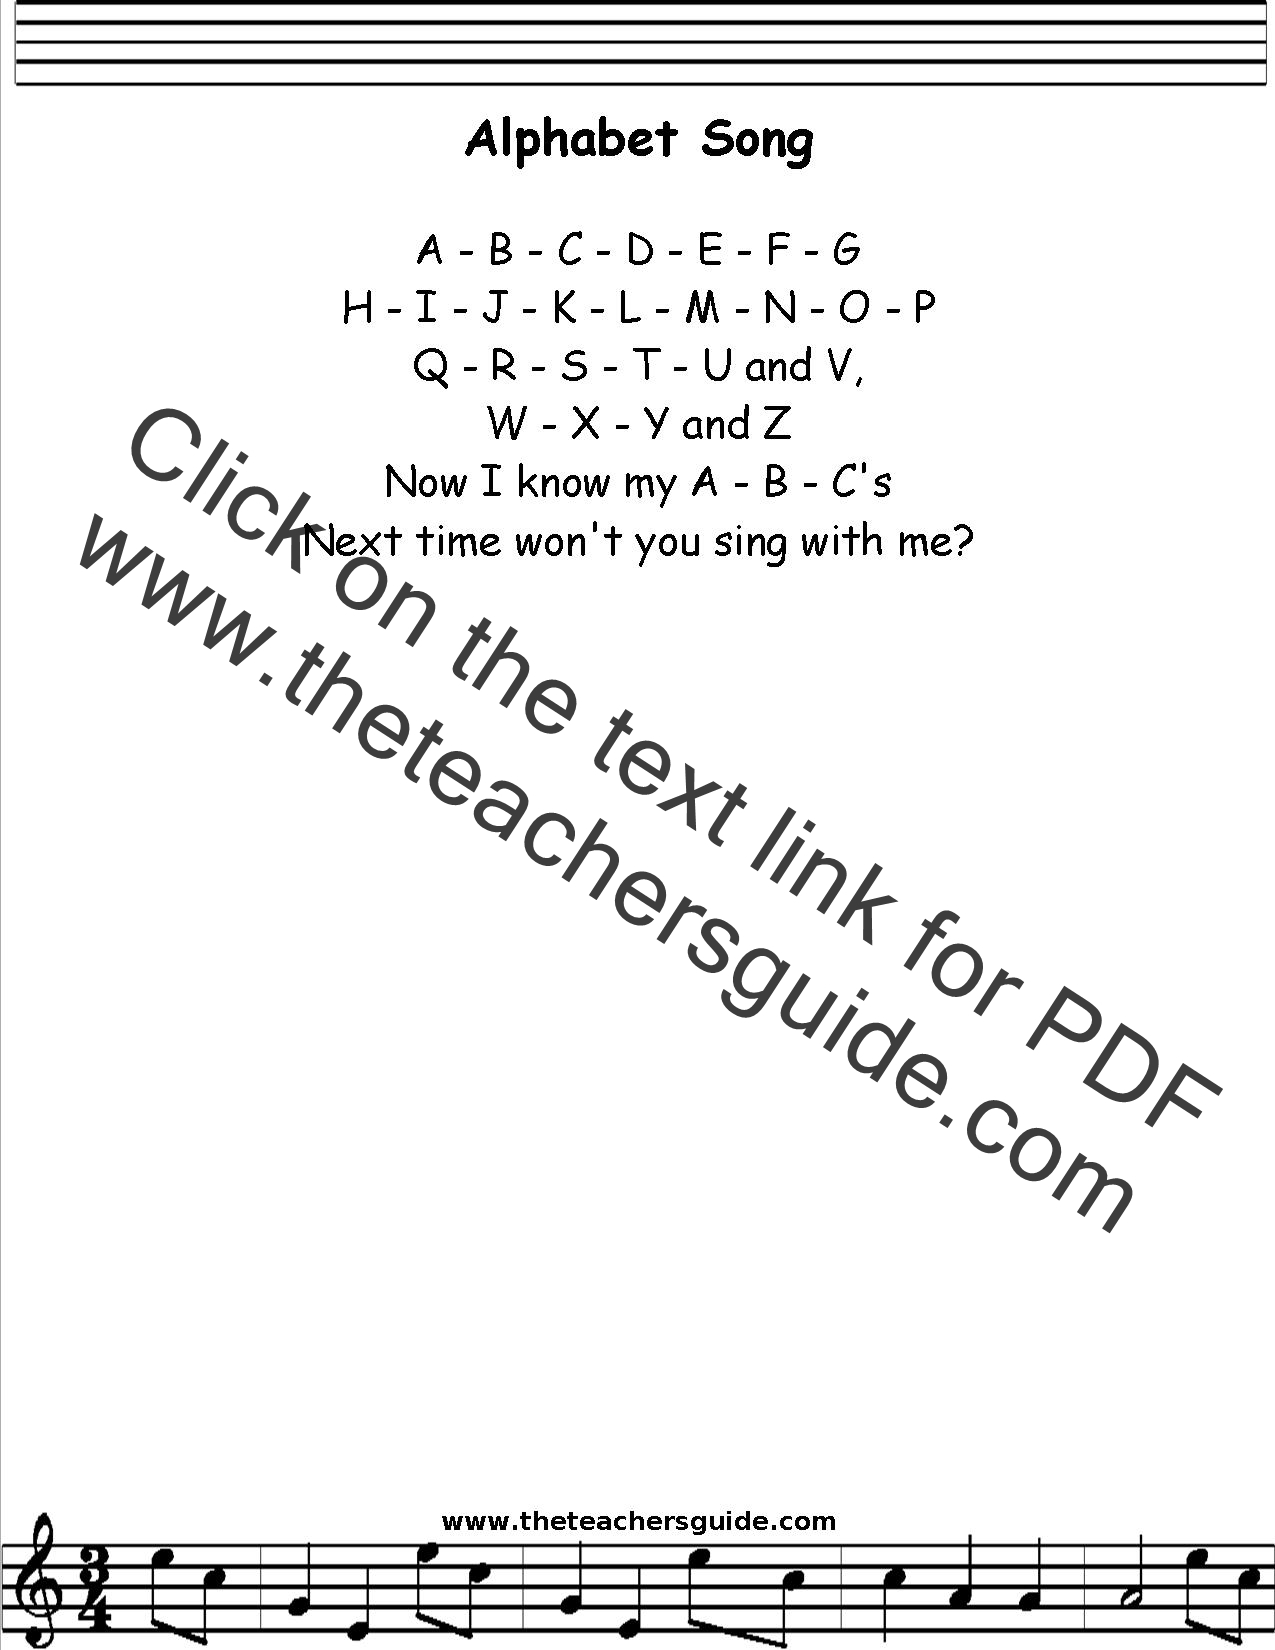 Alphabet Song Lyrics Printout Midi And Video